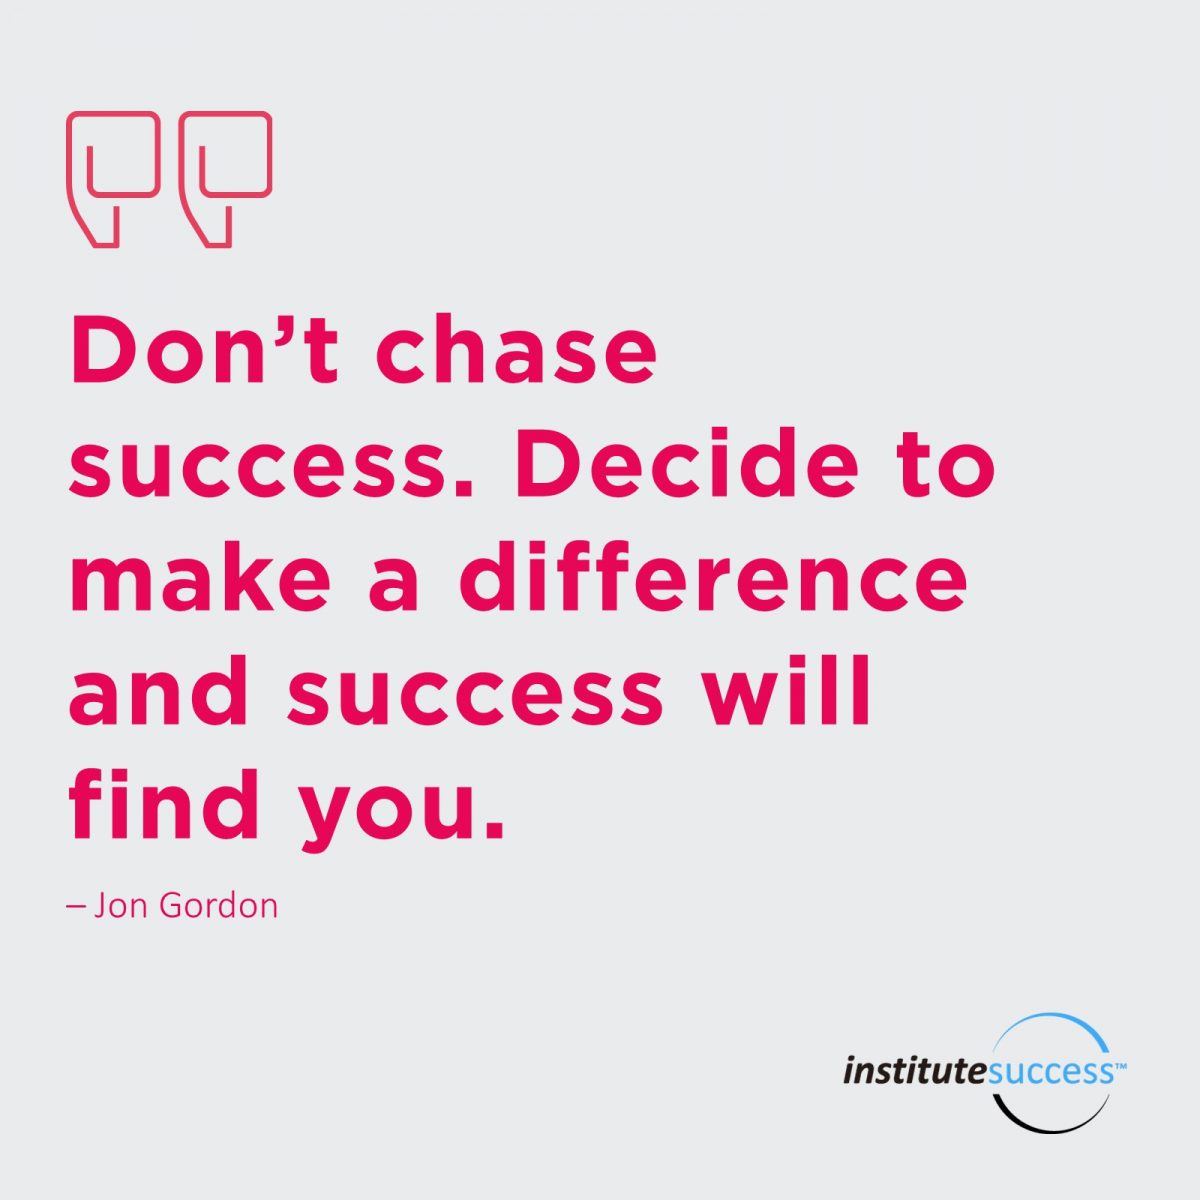 Don't chase success. Decide to make a difference and success will find you.  Jon Gordon